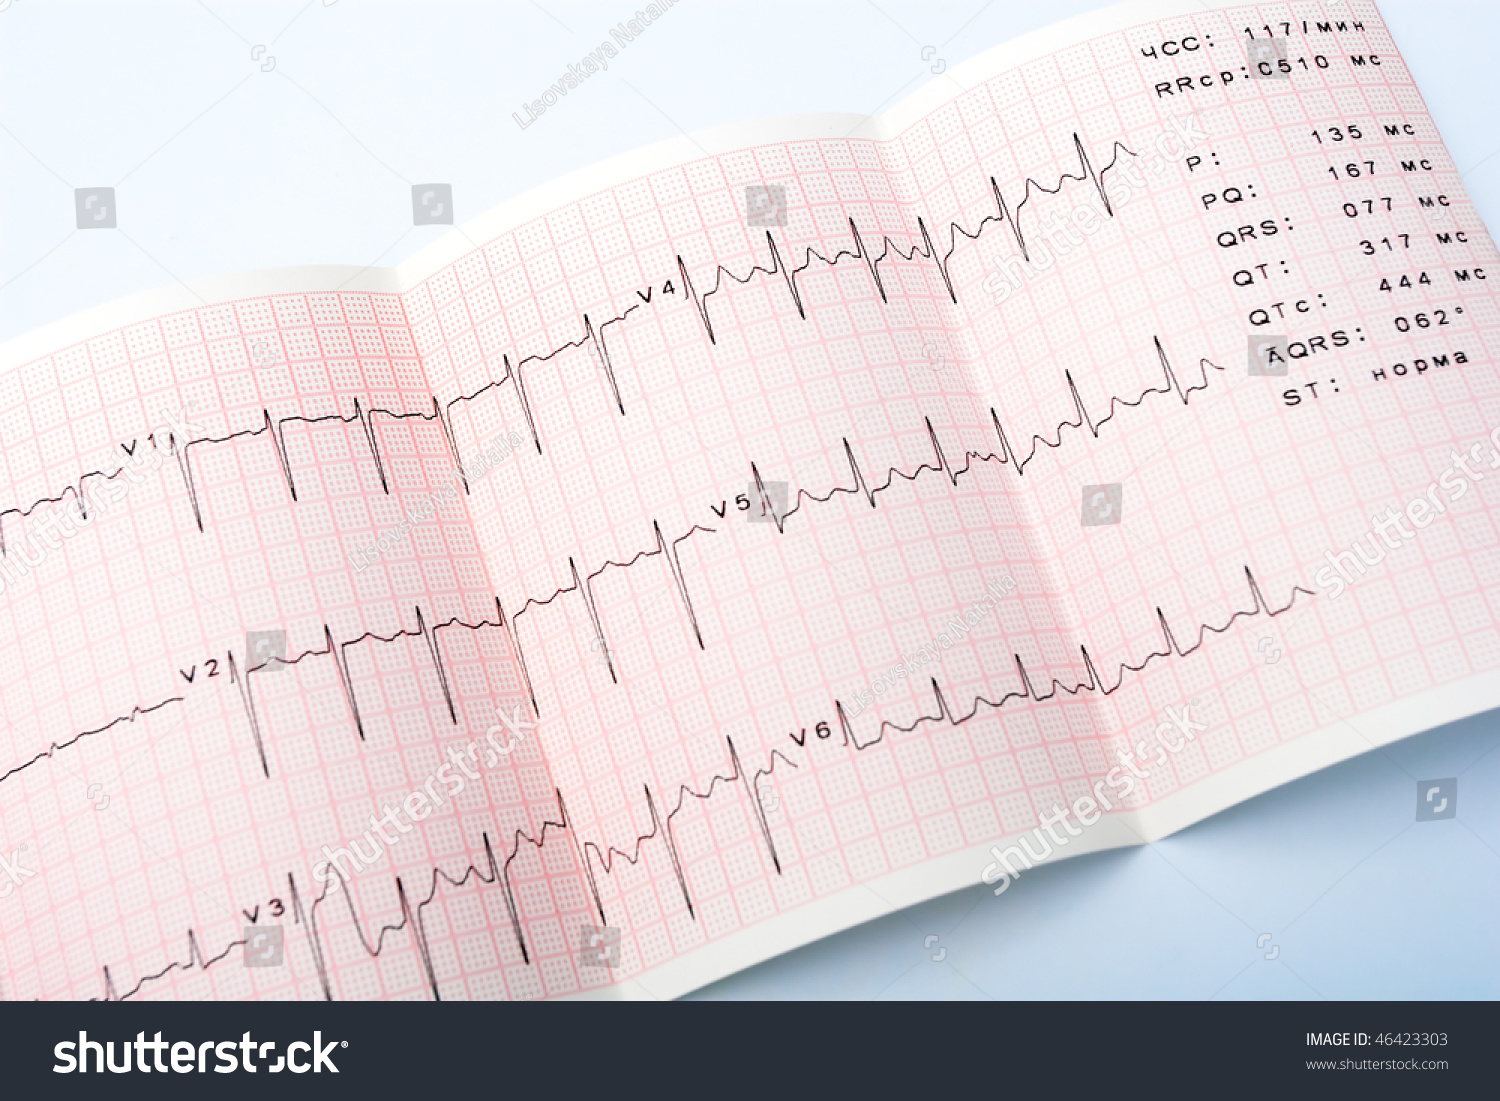 Electrocardiogram Waveform From Ekg Test Showing The Patient S Heart Rhythm Stock Photo